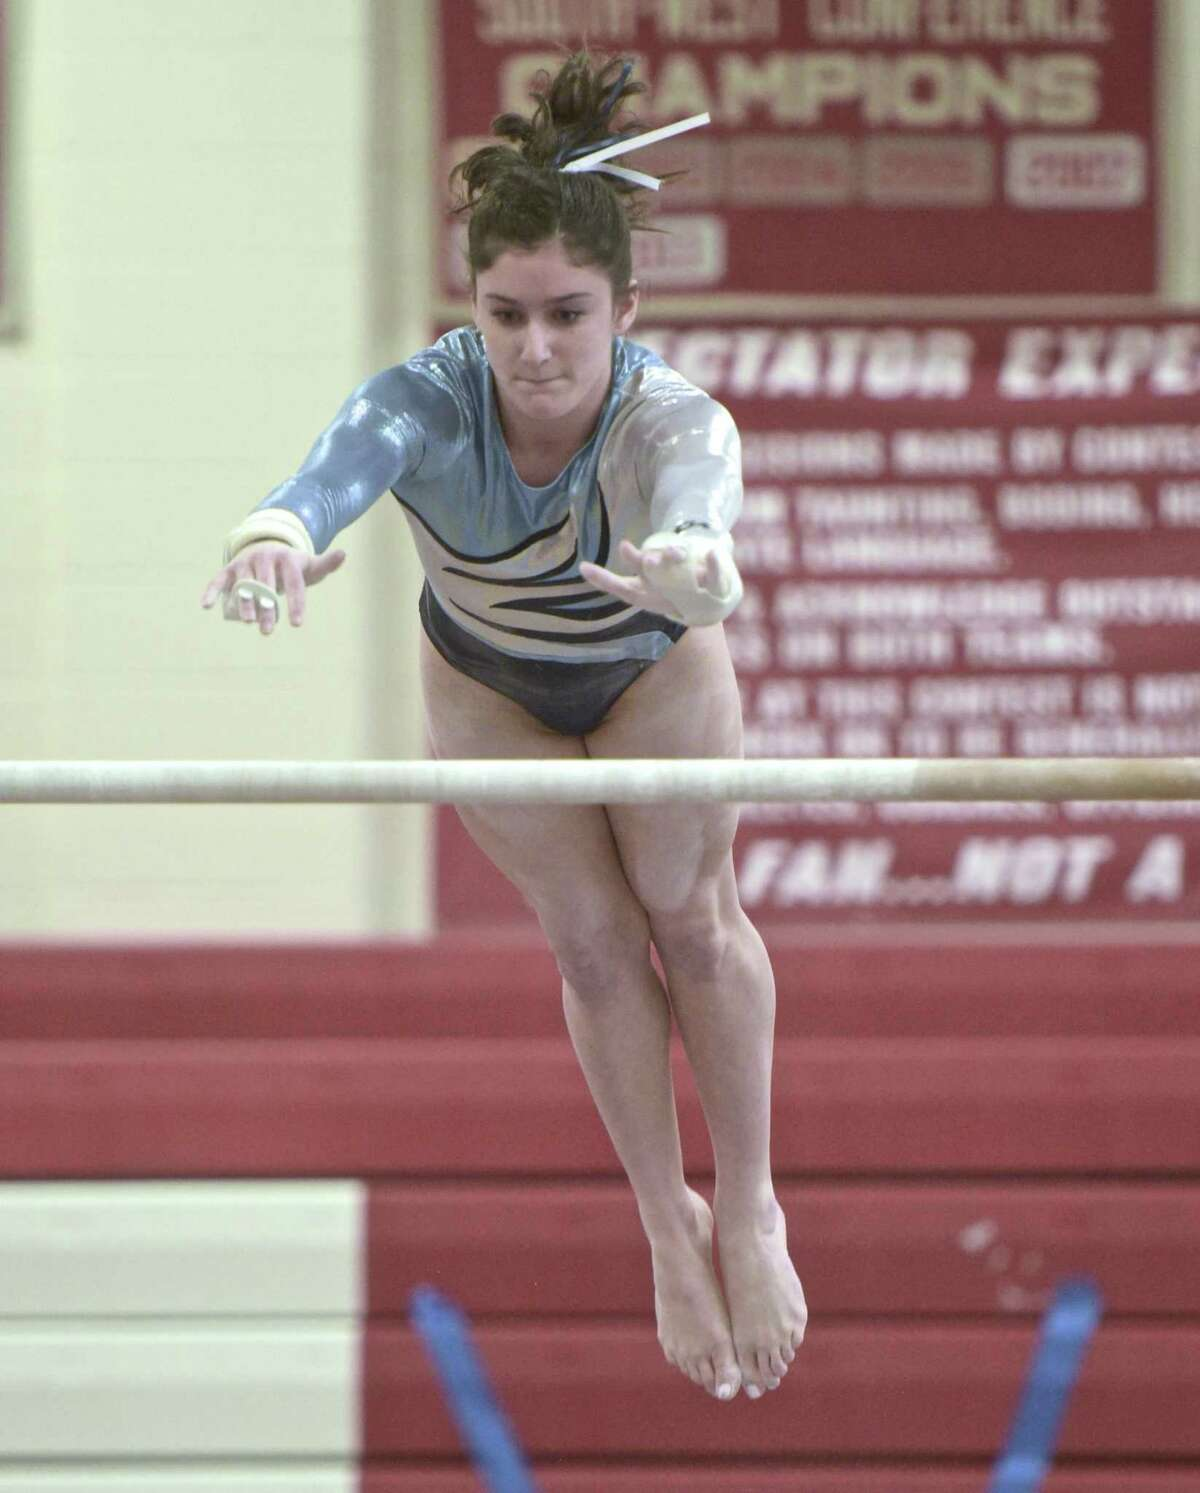 Jessica Olin, Wilton High School, competes in the uneven bars at the Connecticut State Open gymnastics meet, Saturday, March 3, 2018, at Pomperaug High School, in Southbury, Conn.